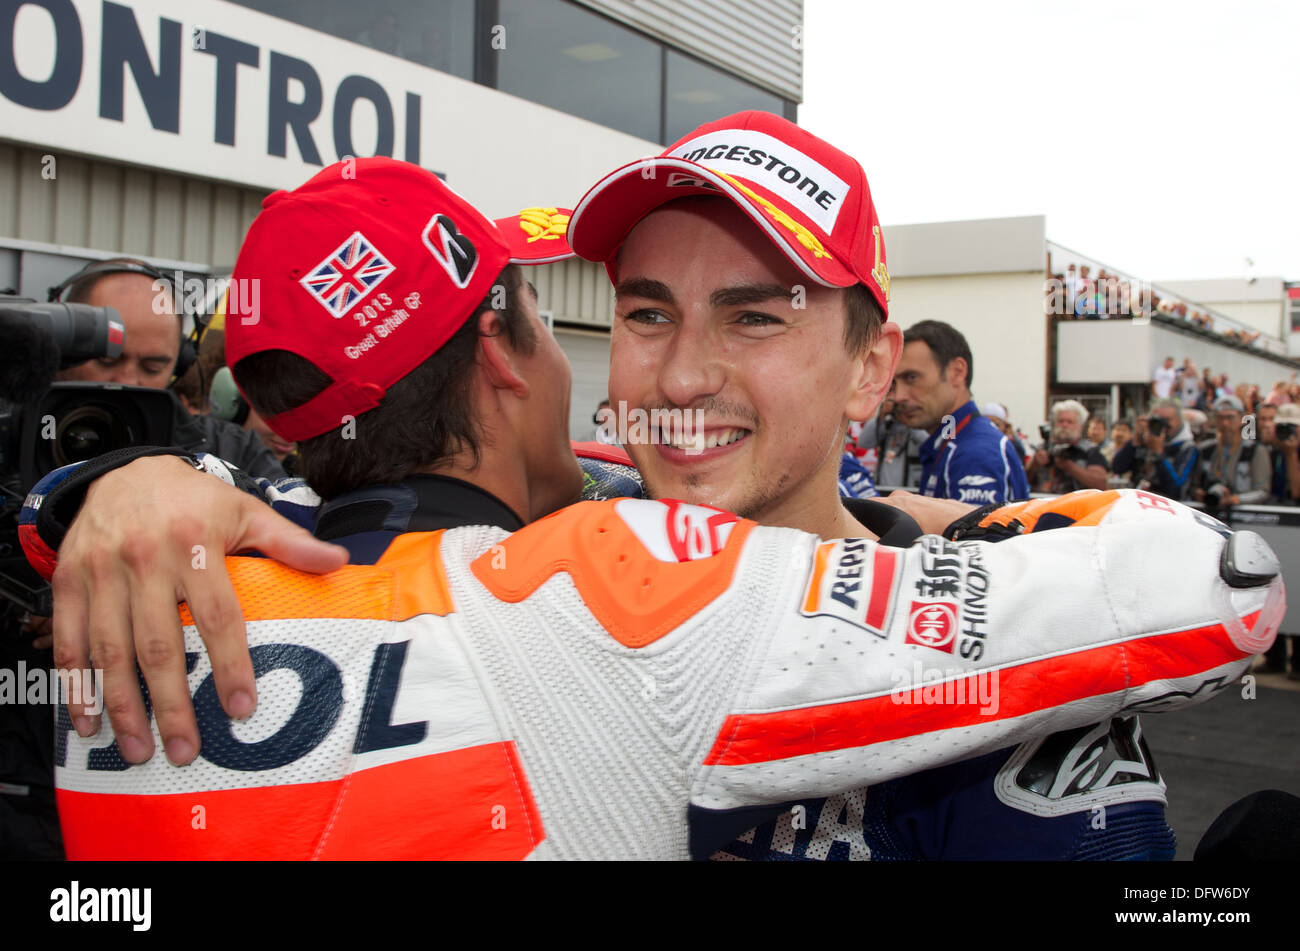 Marc Marquez congratulated Jorge Lorenzo for his win in round 12 of the Hertz FIm MotoGP at Silverstone - Stock Image